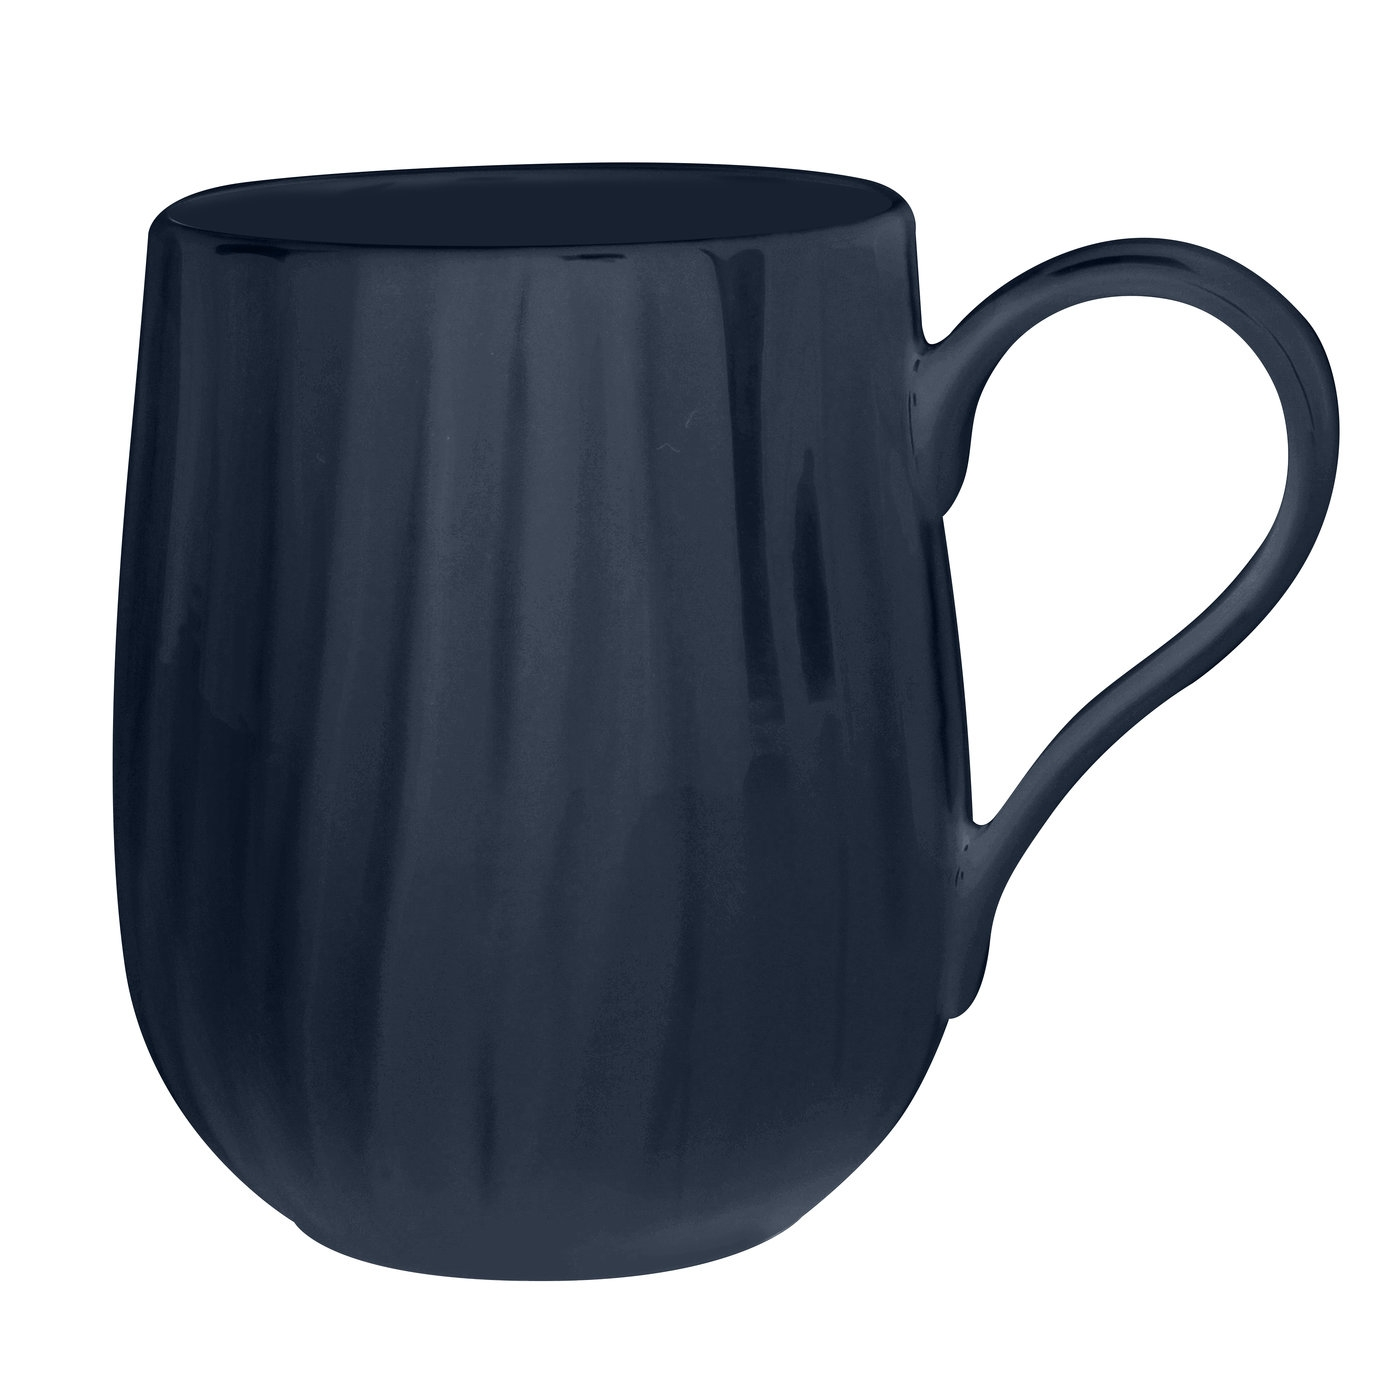 Sophie Conran for Portmeirion Blue Oak 15oz Mug image number 0